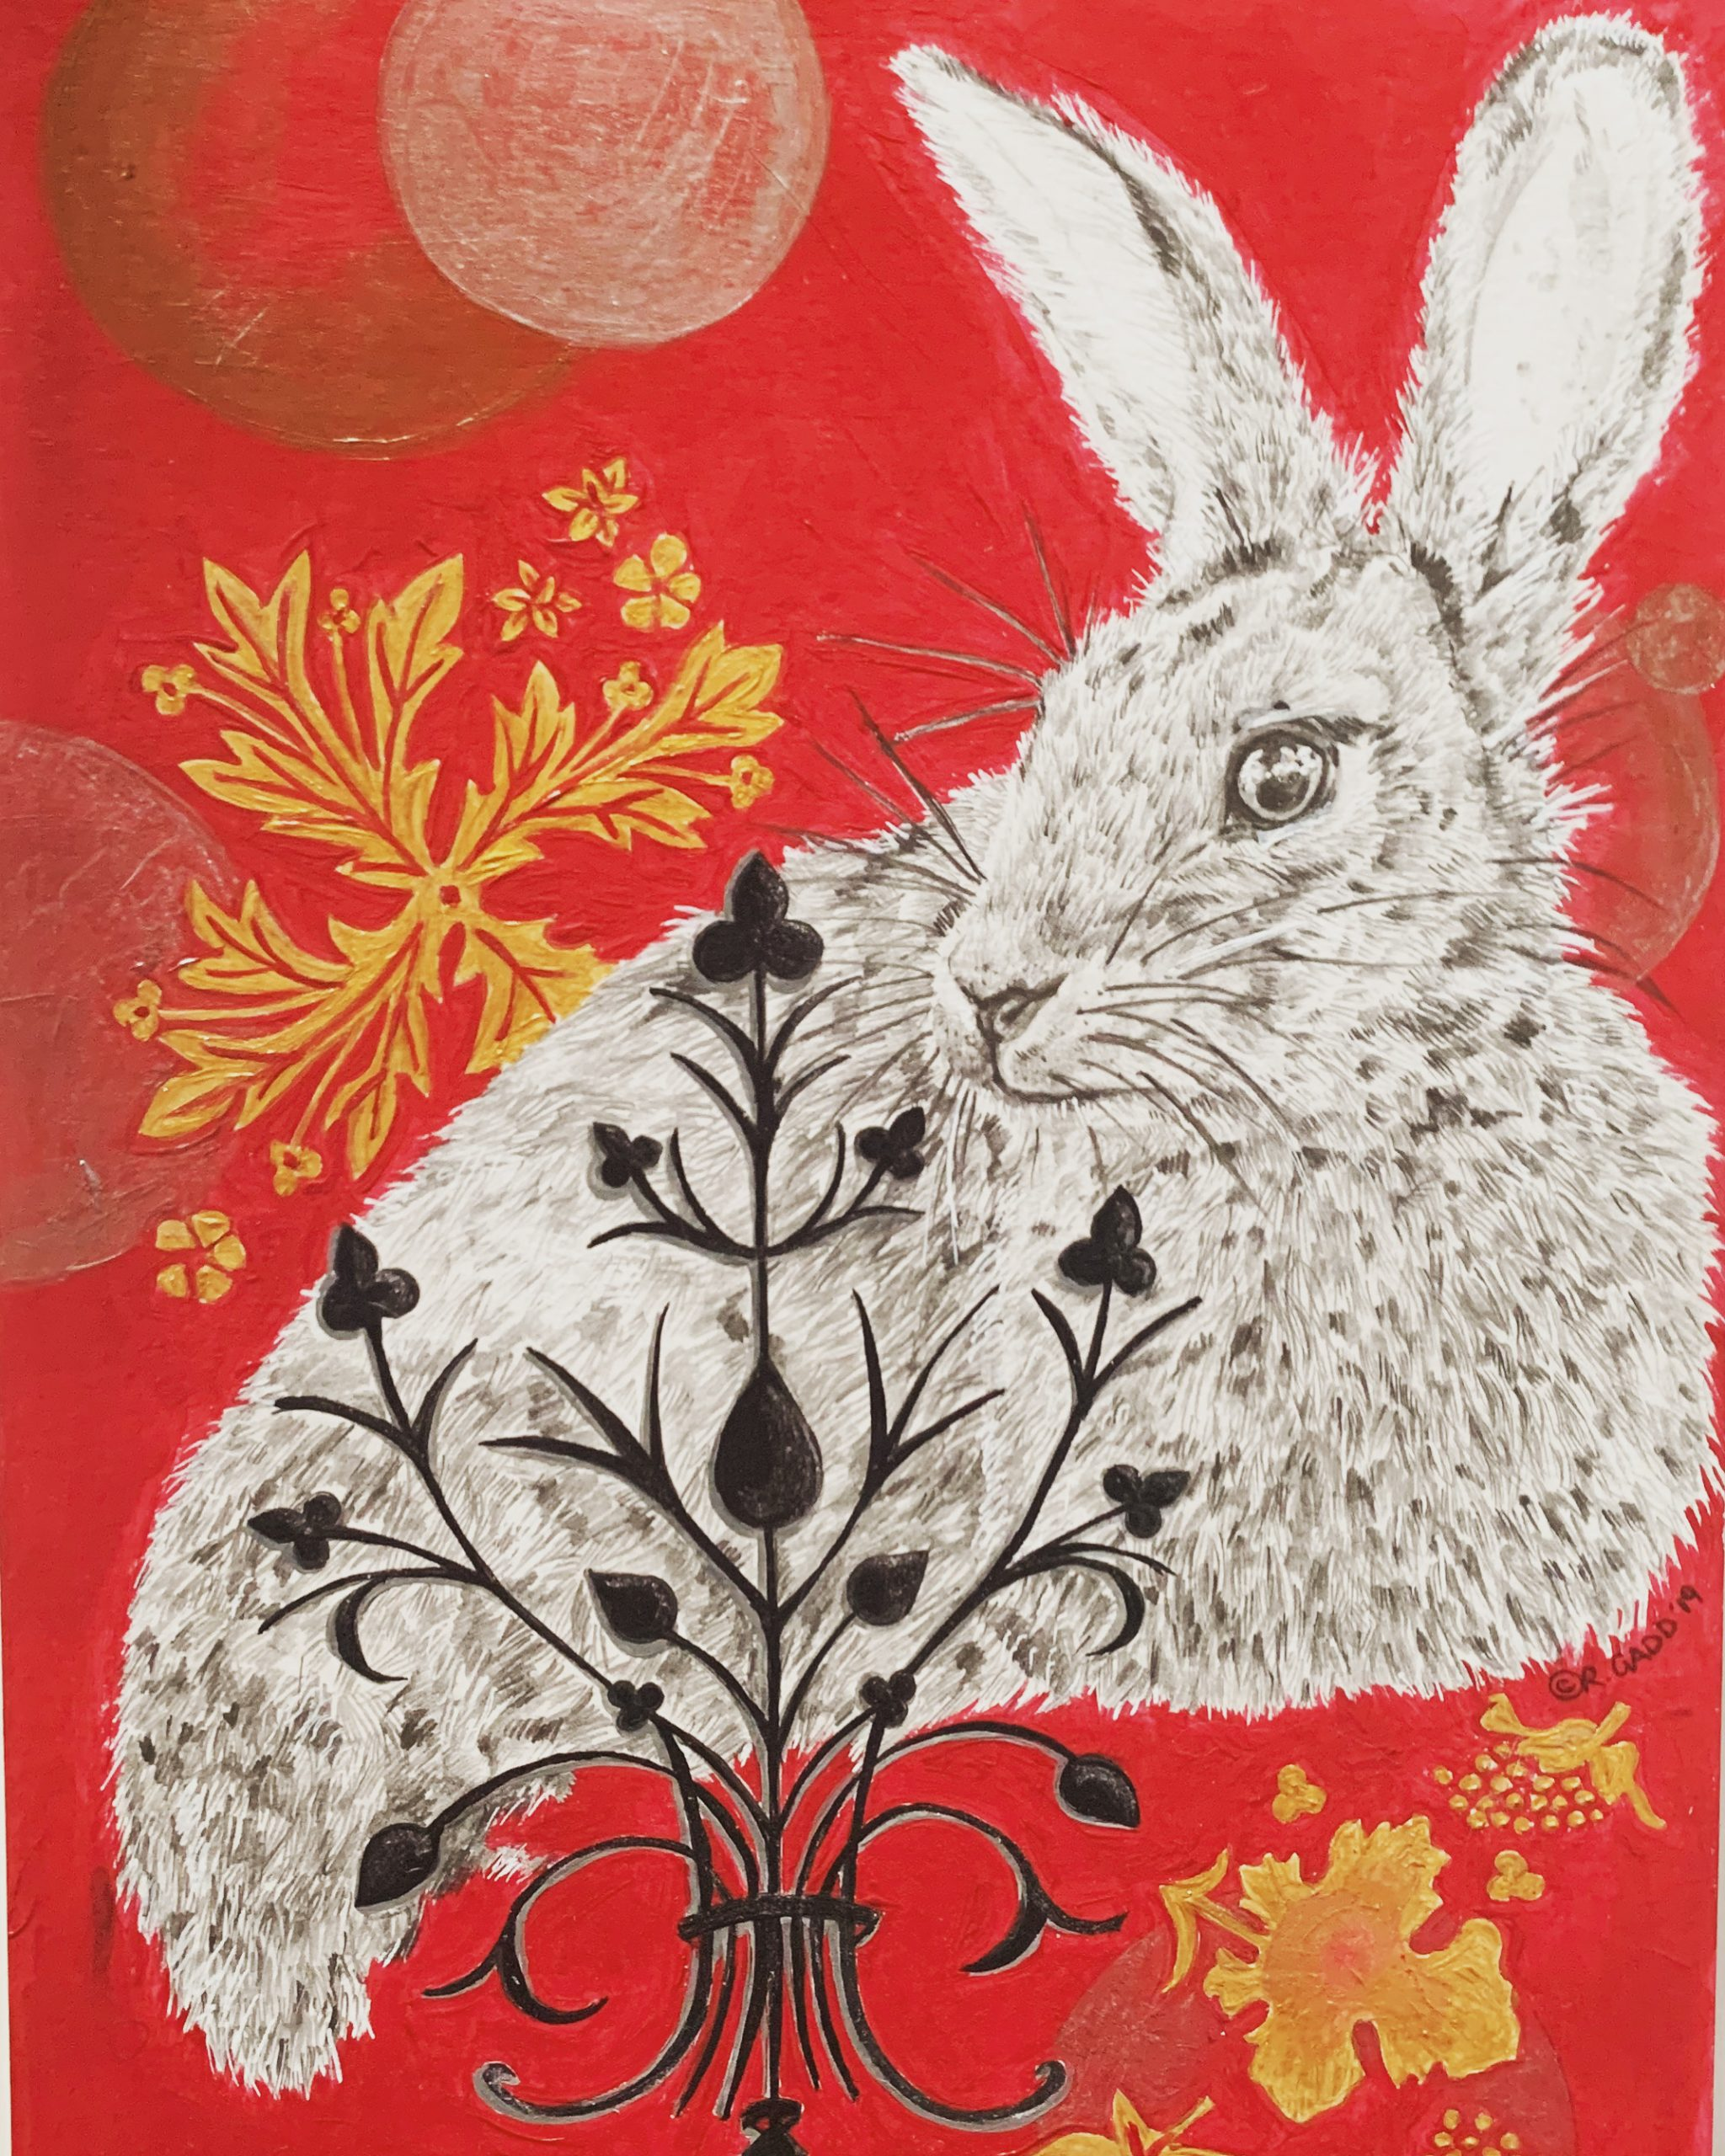 Pencil drawinf of rabbit gold and black patterns on red background